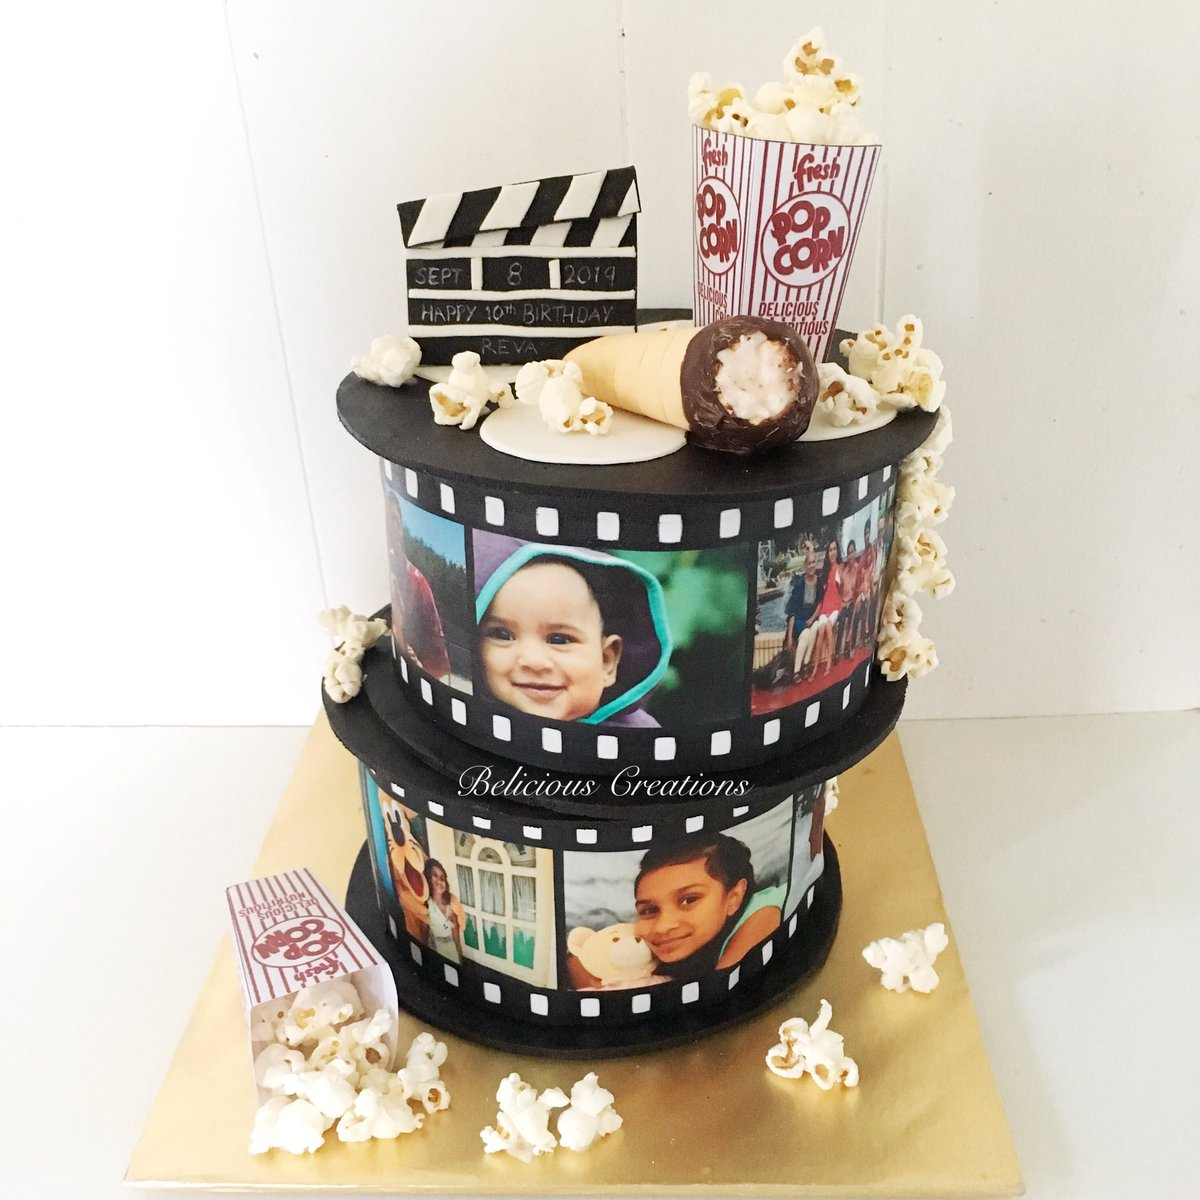 Remarkable Belicious Creations On Twitter A Film Roll Themed Birthday Cake Funny Birthday Cards Online Bapapcheapnameinfo